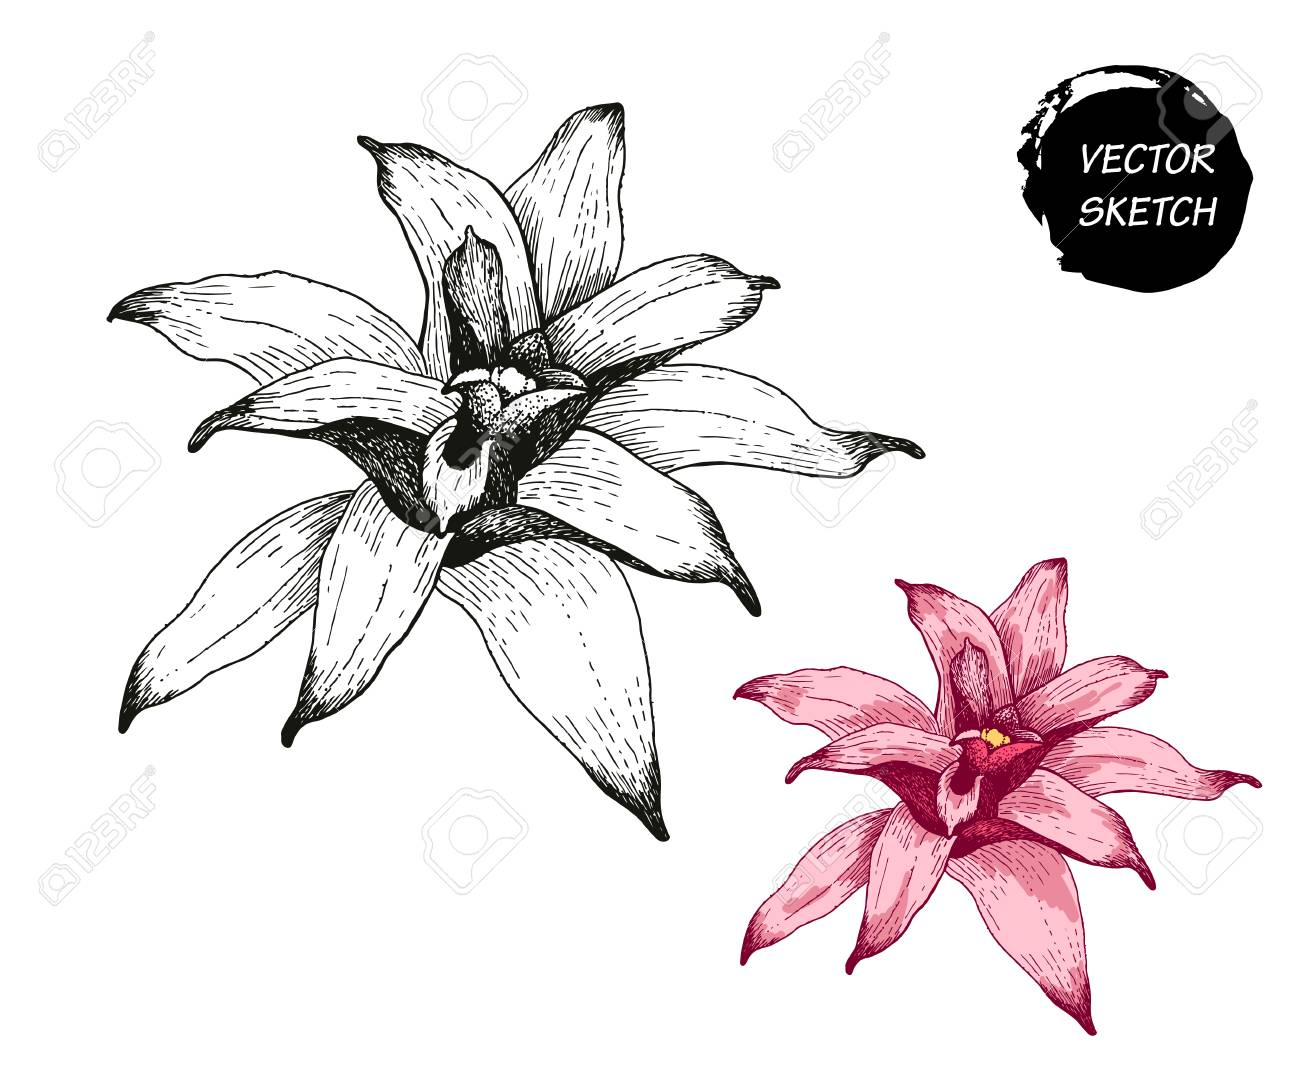 Vector Illustration Of Tropical Flowers In Sketch Style For Design